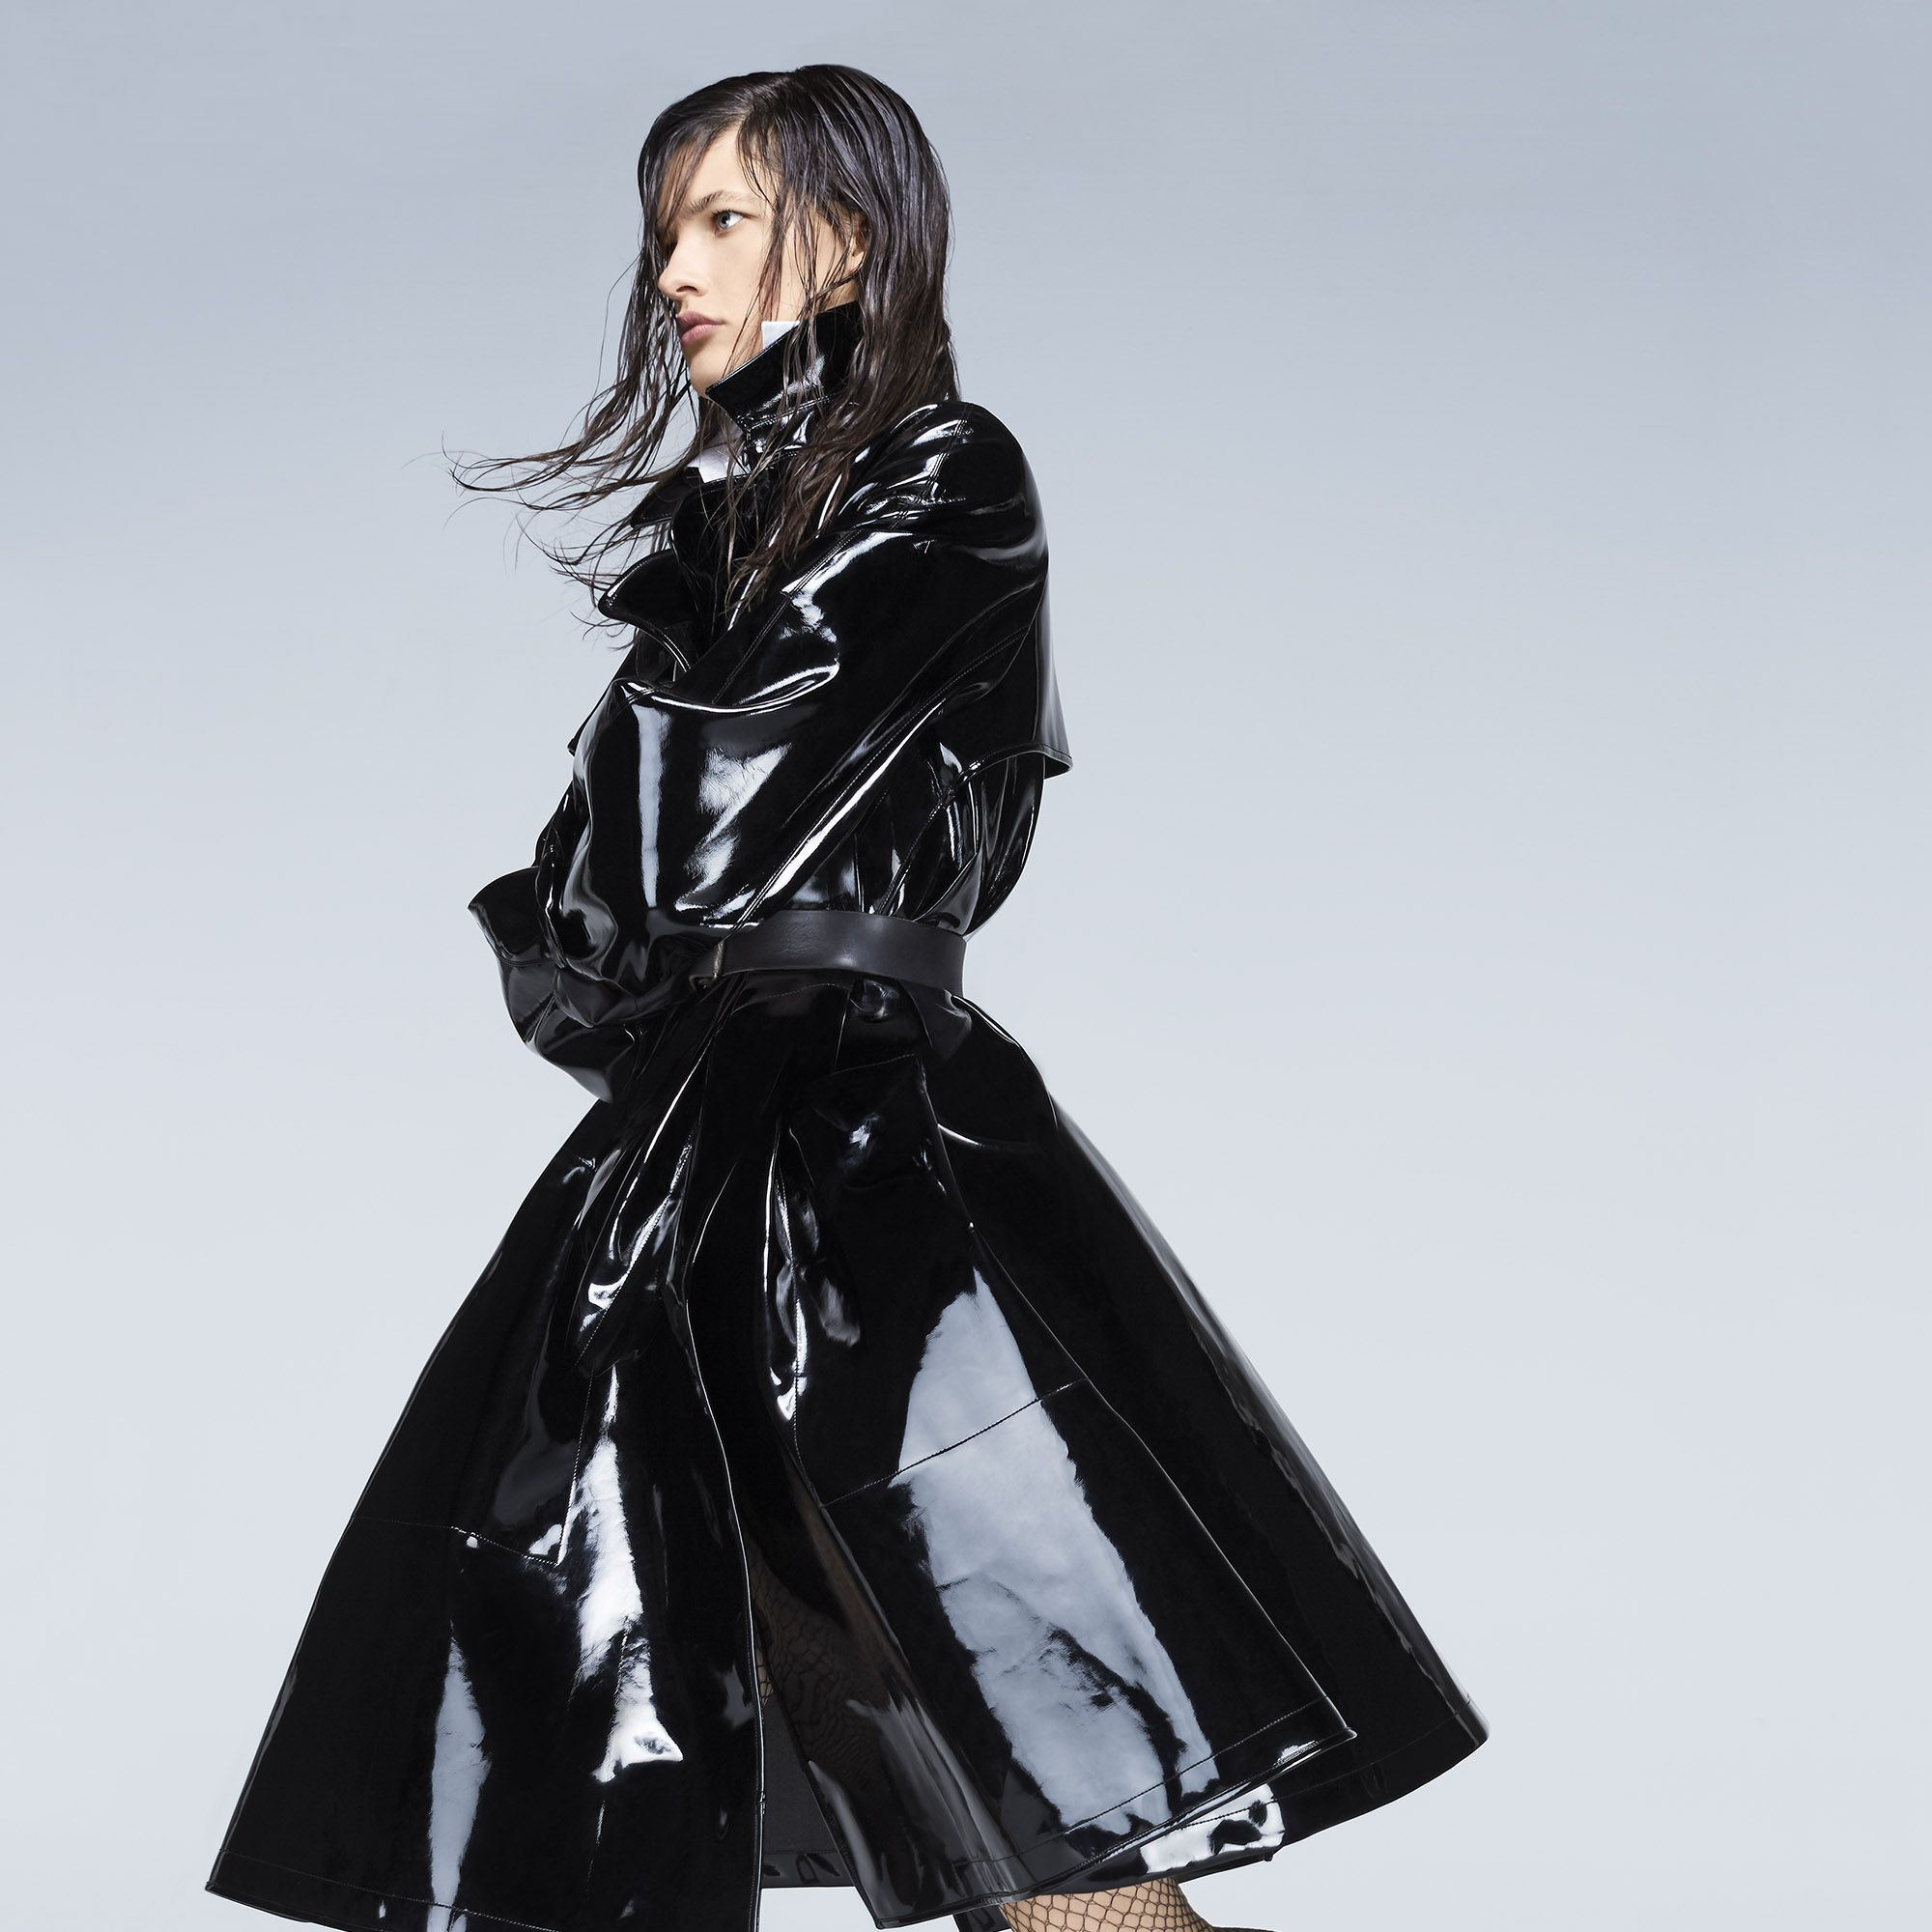 """<p><strong>Giorgio Armani </strong>coat, $6,195, and shirt, $825, 212-988-9191&#x3B; Stylist's own belt&#x3B; <strong>Wolford</strong> tights, $57, and socks, $29, <a href=""""http://company.wolford.com/?lang=en"""" target=""""_blank"""">wolford.com</a>&#x3B; <strong>Grenson</strong> shoes, $420, <a href=""""http://www.grenson.com/us/"""" target=""""_blank"""">grenson.com</a>. </p>"""